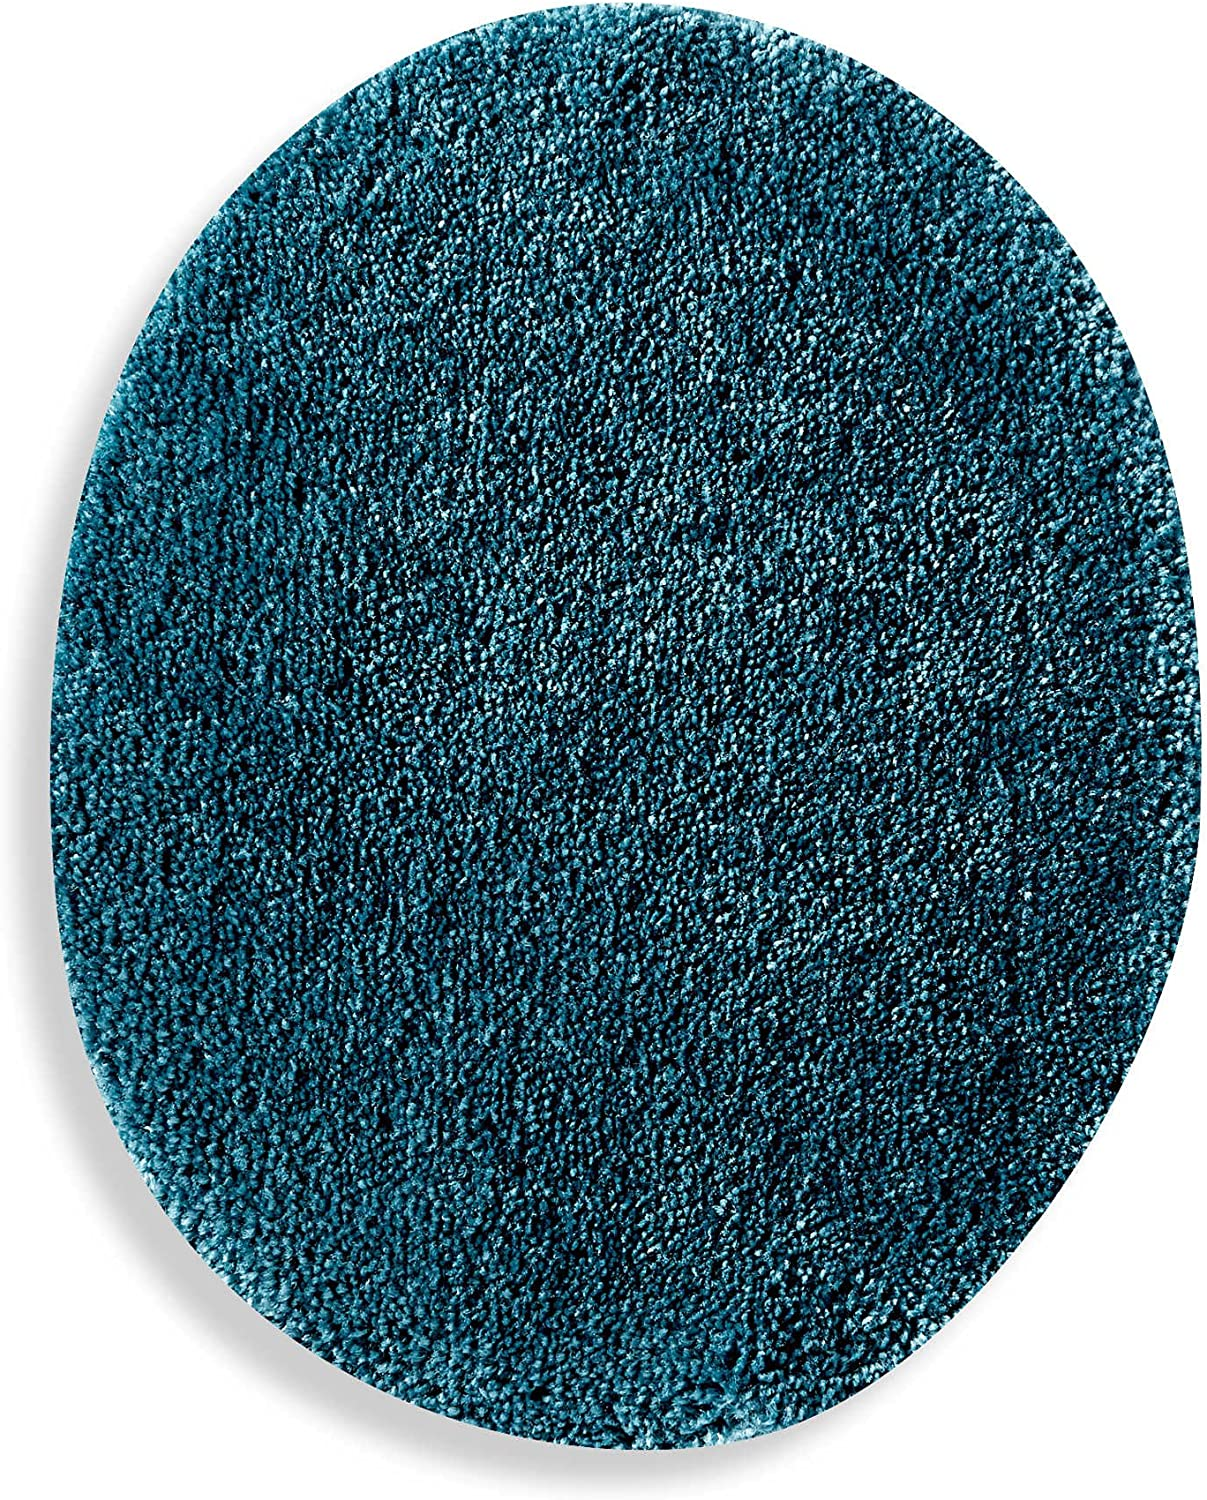 Wamsutta Duet Elongated Toilet Lid Cover in New Blue